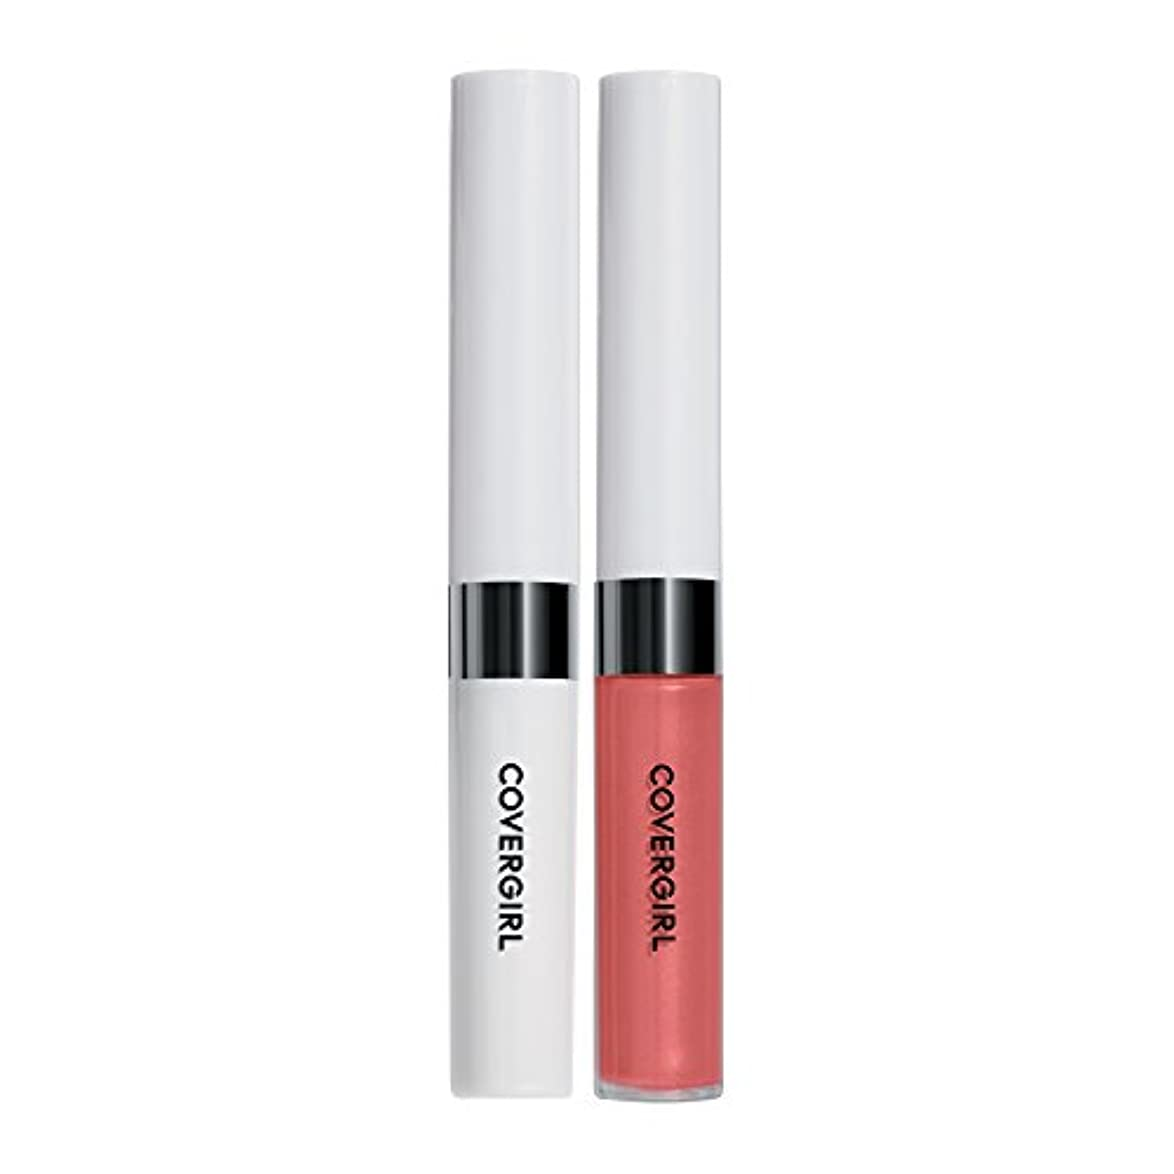 元気穀物宿るCOVERGIRL Outlast All-Day Moisturizing Lip Color, Coral Sunset 512 [並行輸入品]